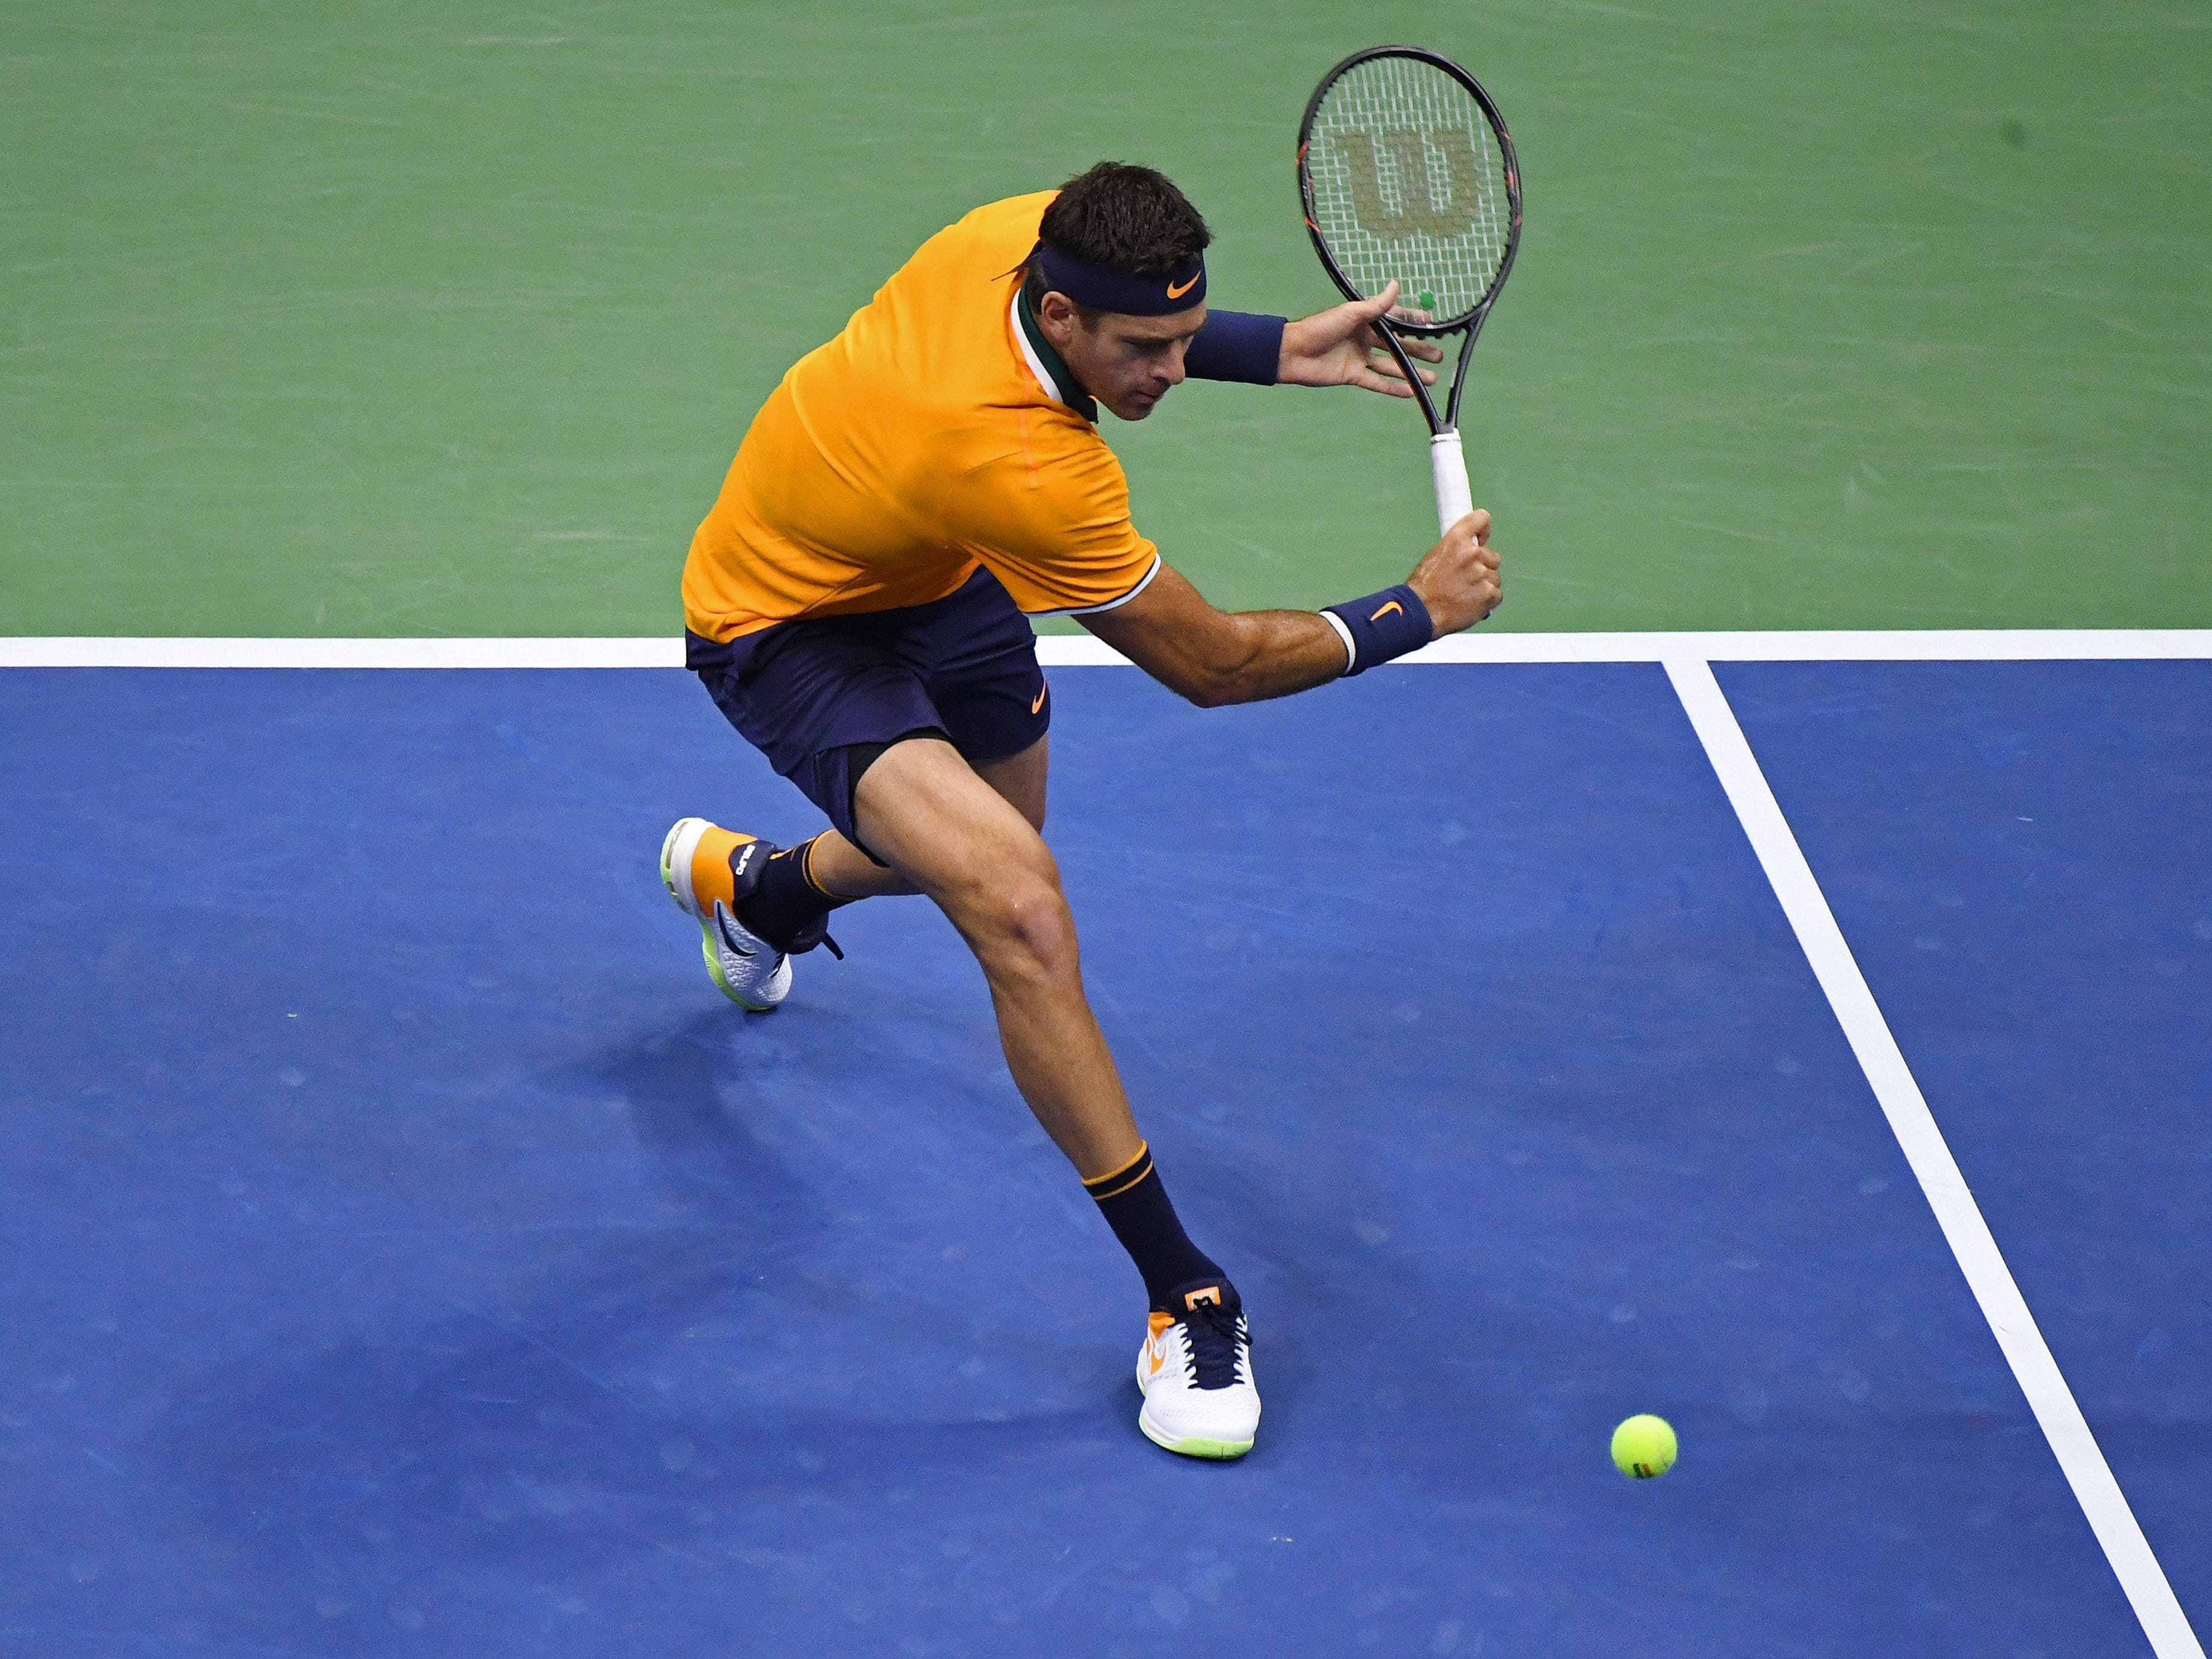 Juan Martin del Potro plays a backhand against Novak Djokovic.